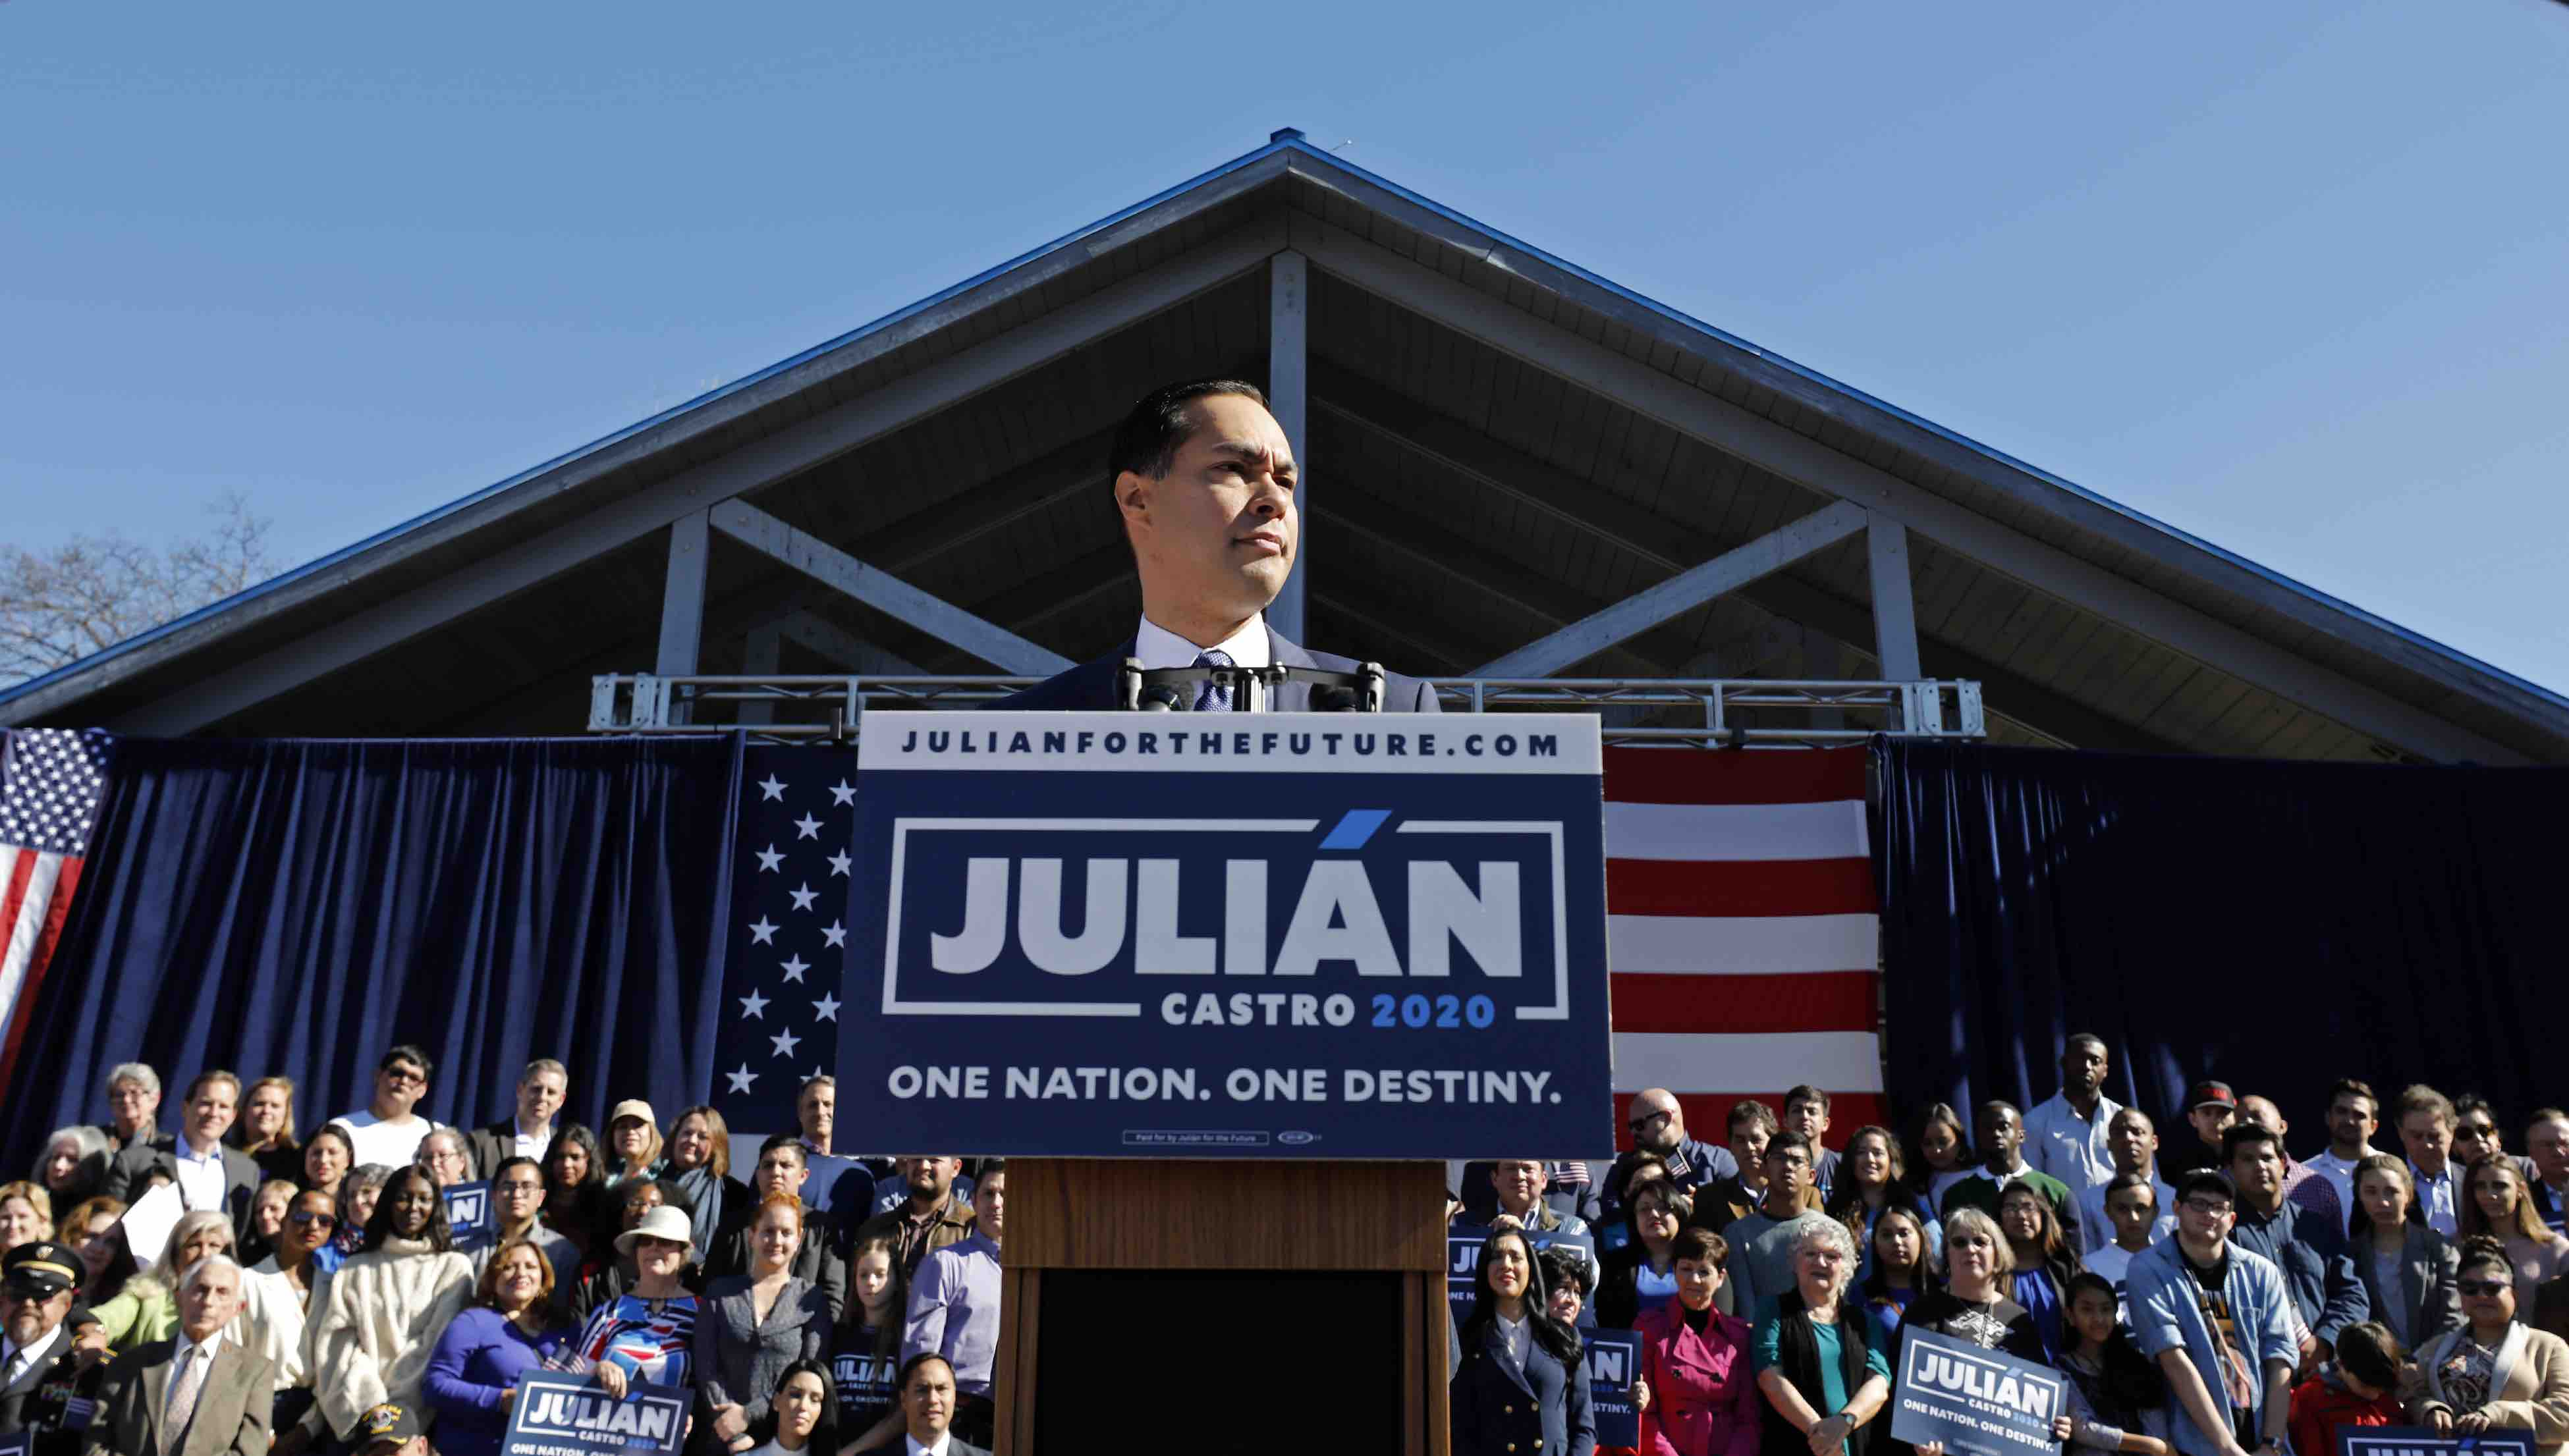 Halloween 2020 Julian Julián Castro 2020: Candidate May Drop Out of 2020 Race Due to Funds